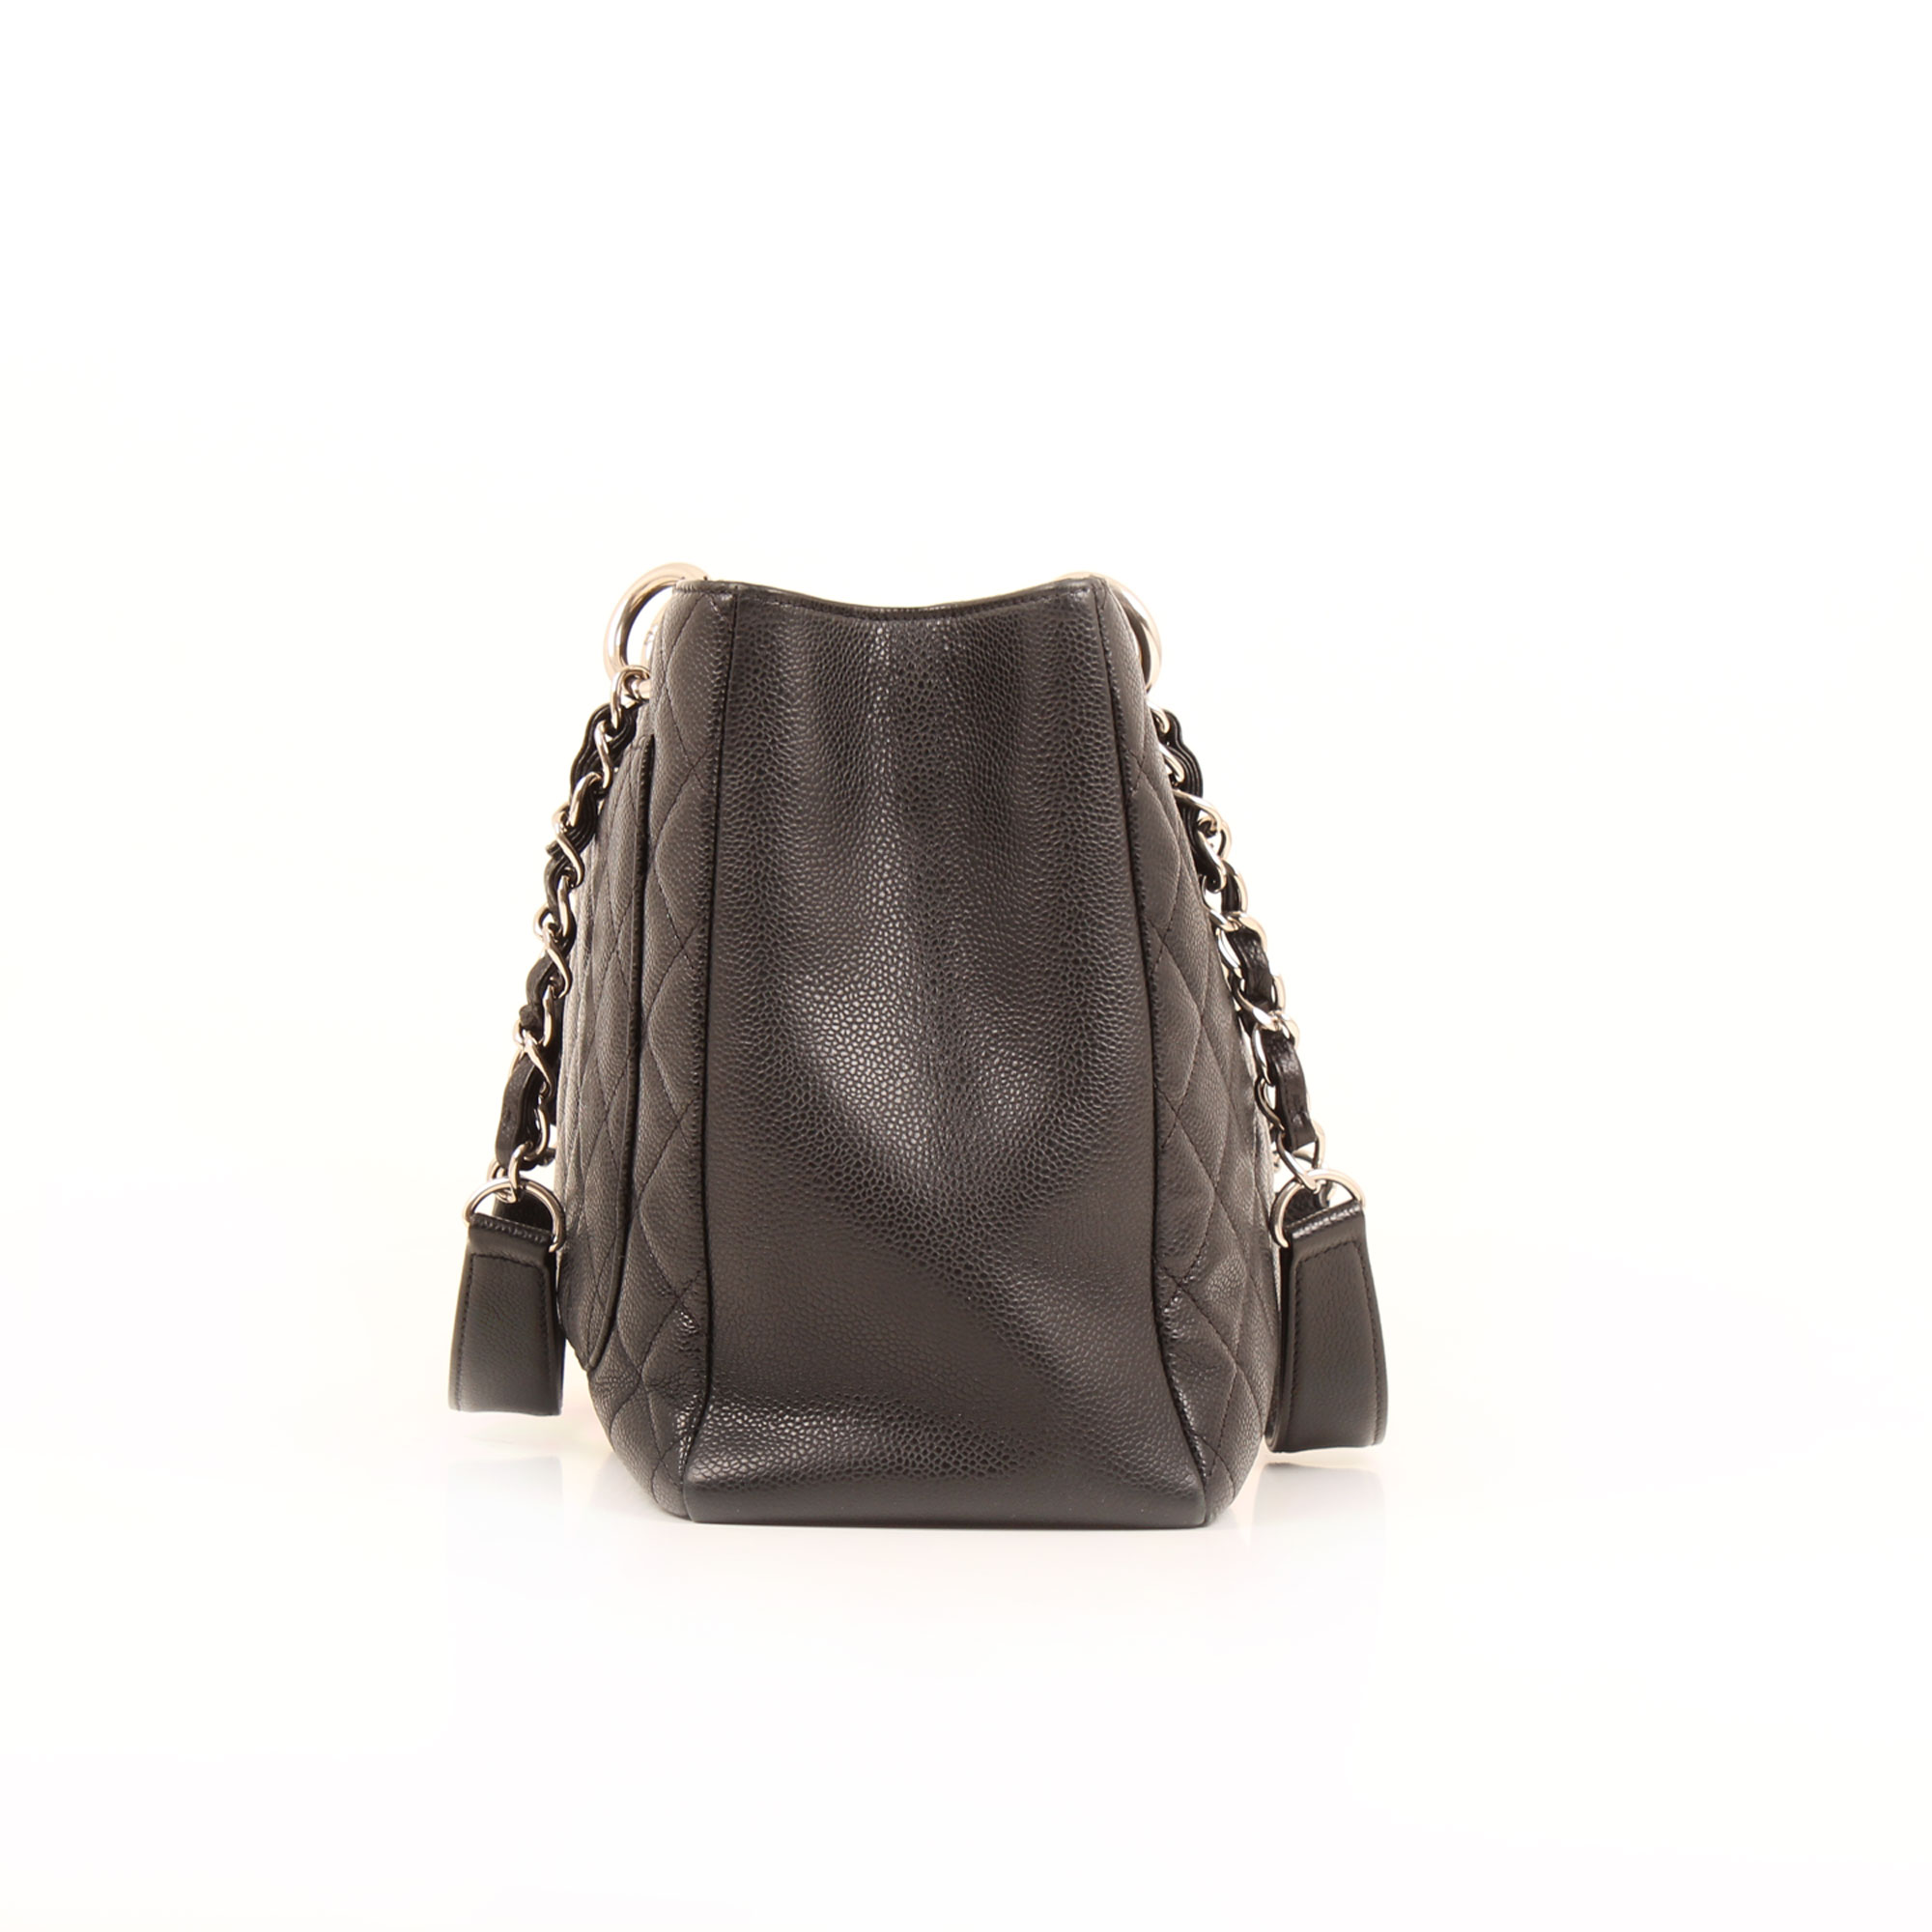 Side image of chanel grand shopping tote bag black caviar leather